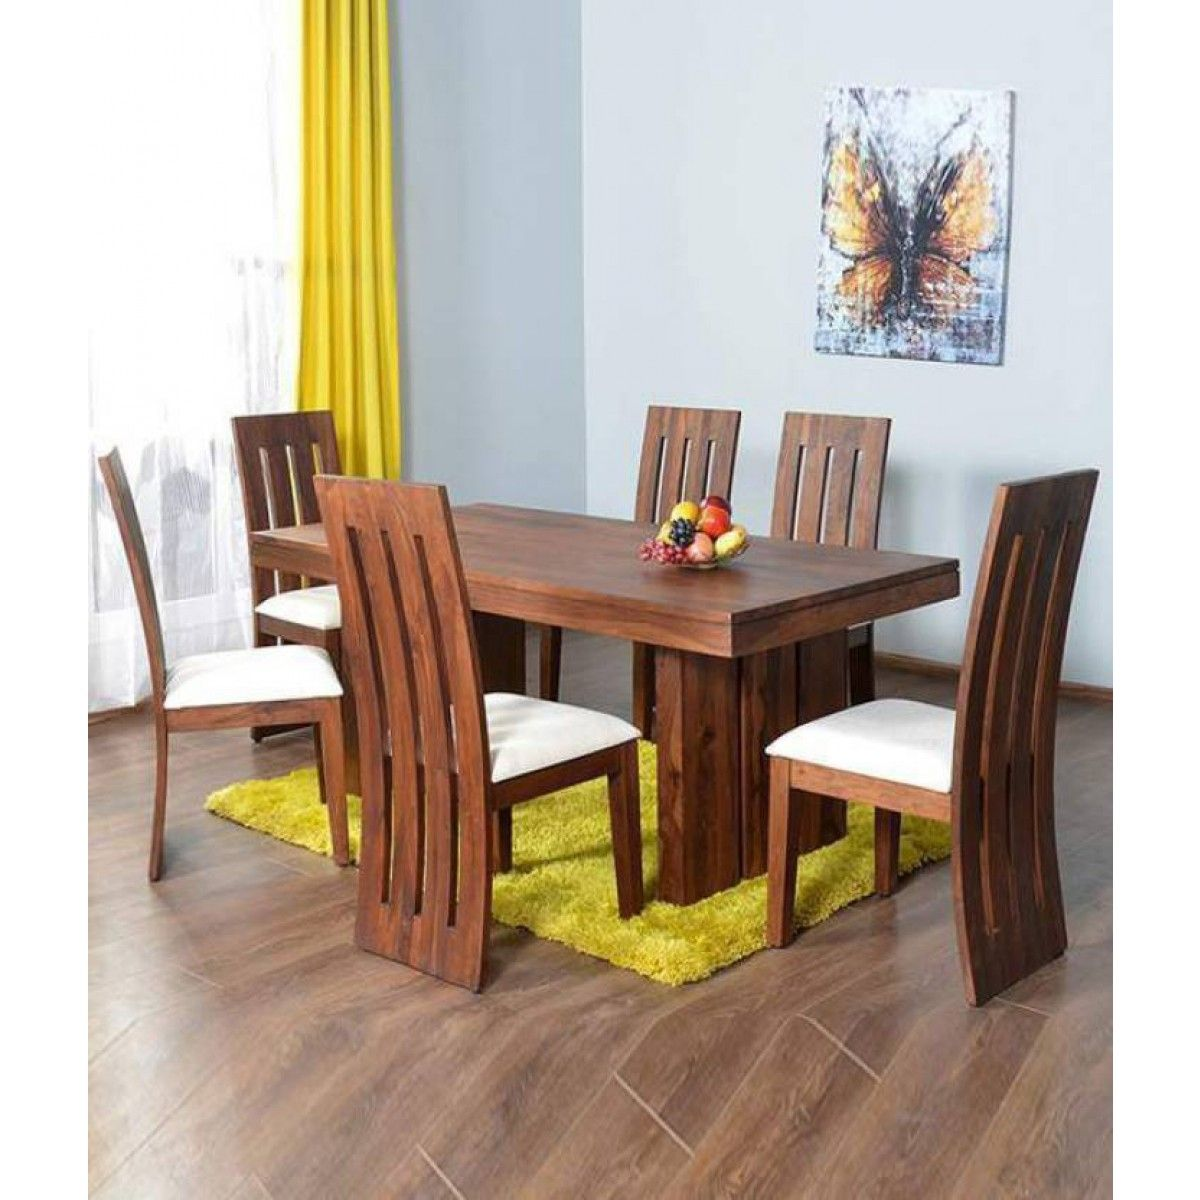 Stylish 6 Seater Dining Dining Table Online Shopping At The Best